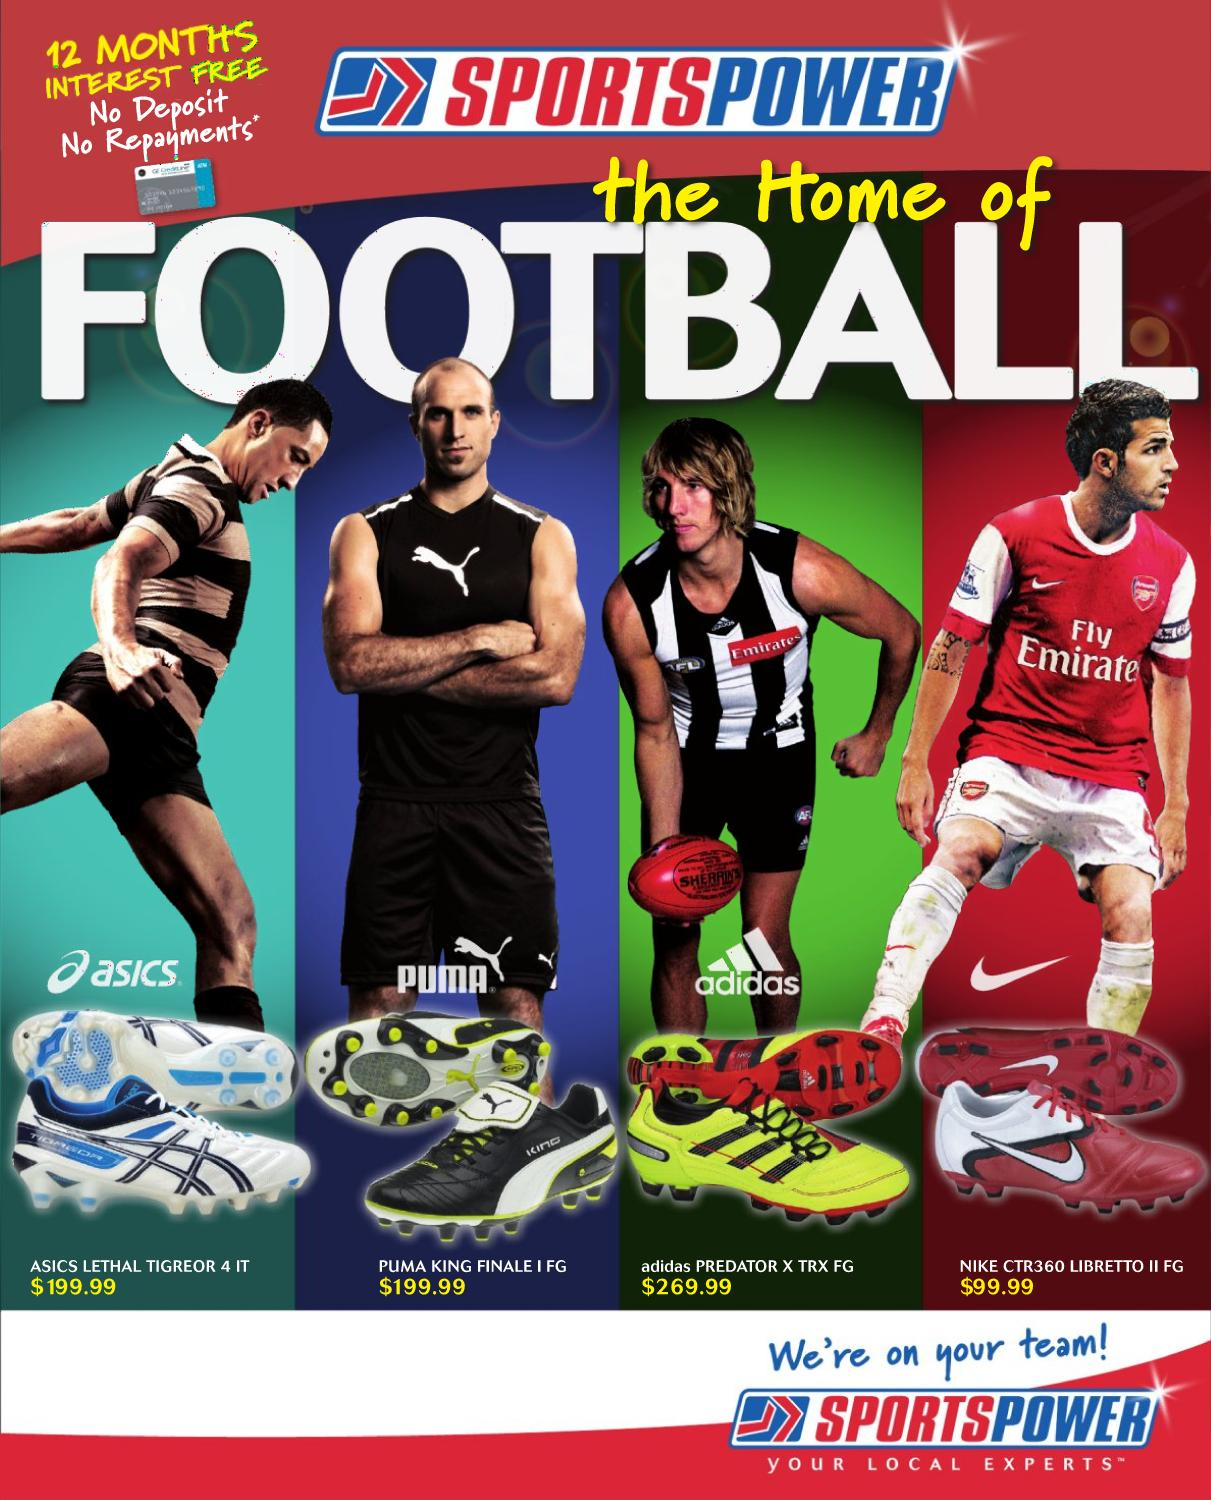 Home of Football by Sports Power issuu